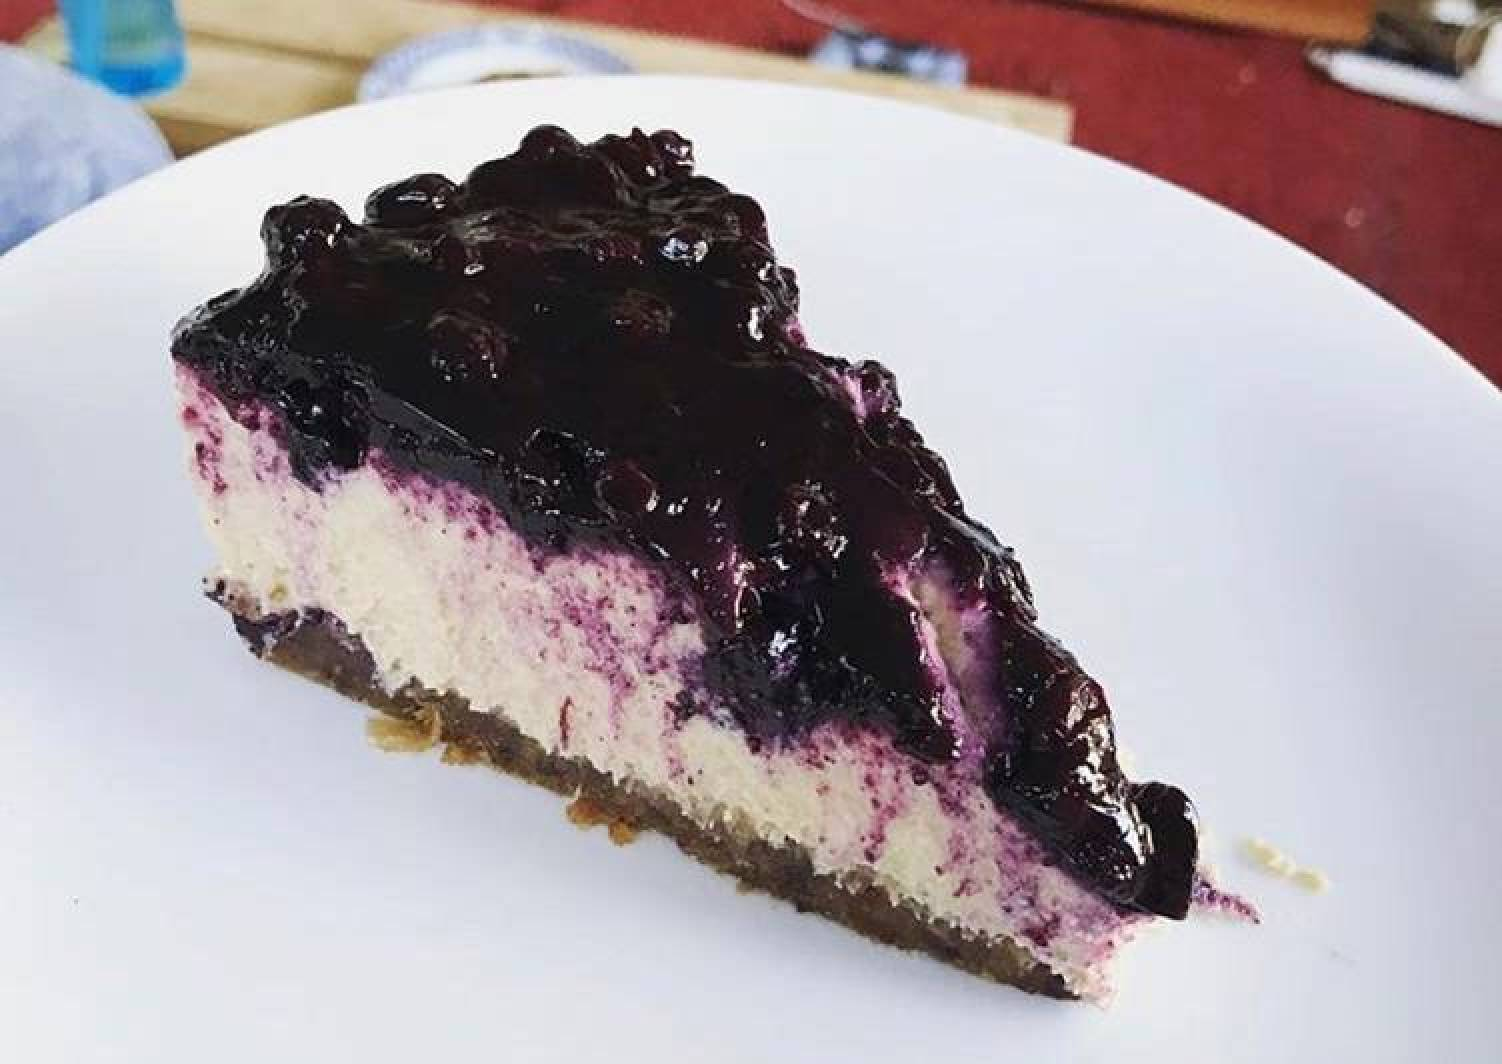 Vegan Lemon & Blueberry Cheesecake (contains nuts)